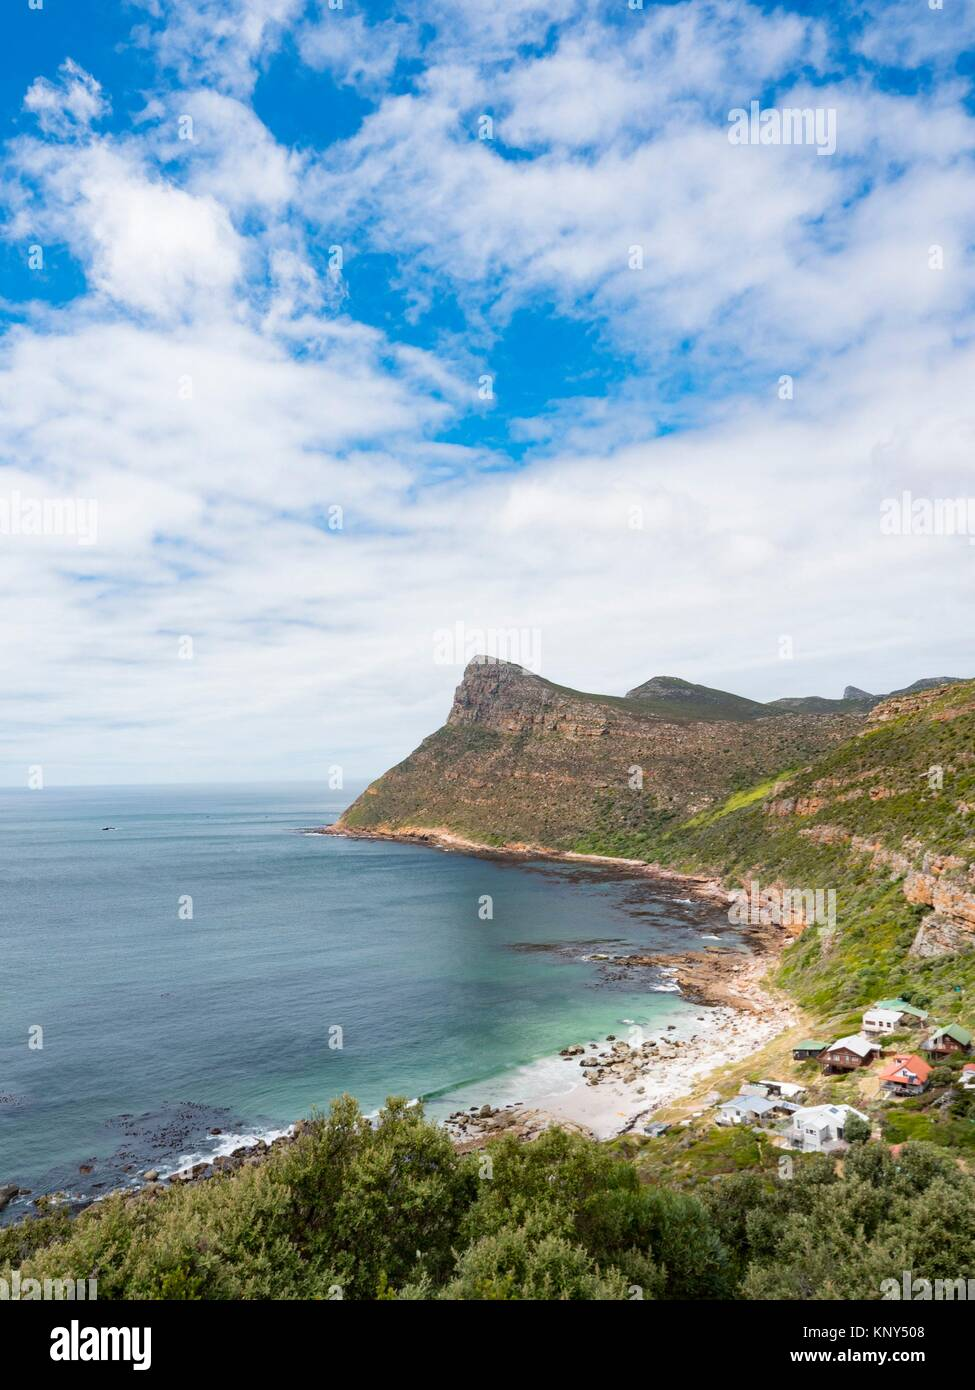 South Africa Cape Point View. - Stock Image